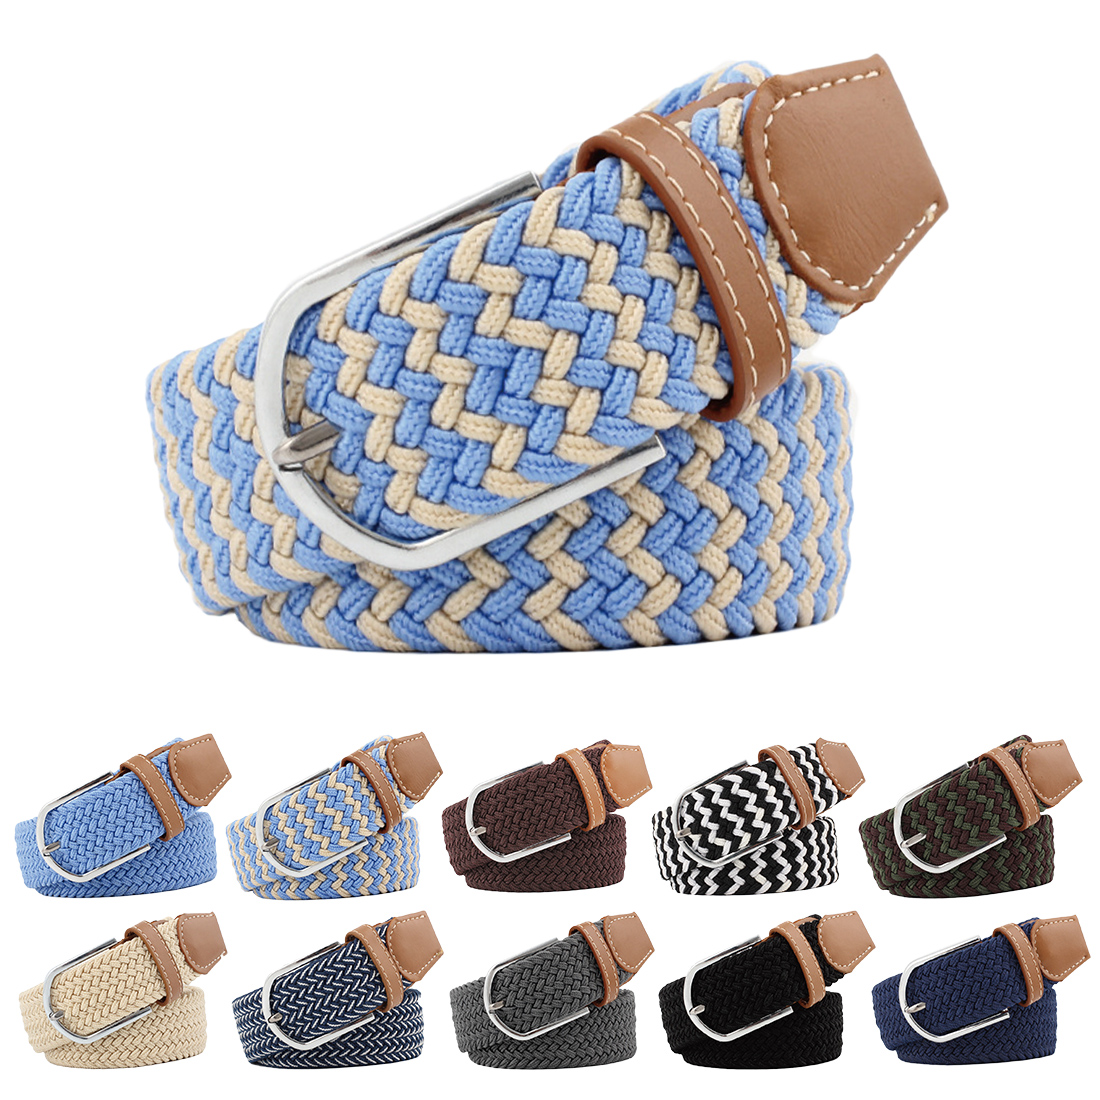 New Design Elastic Fabric Braided Belts for Male & Female Candy Colors Belt New Style Belt Accessories Waist Belts